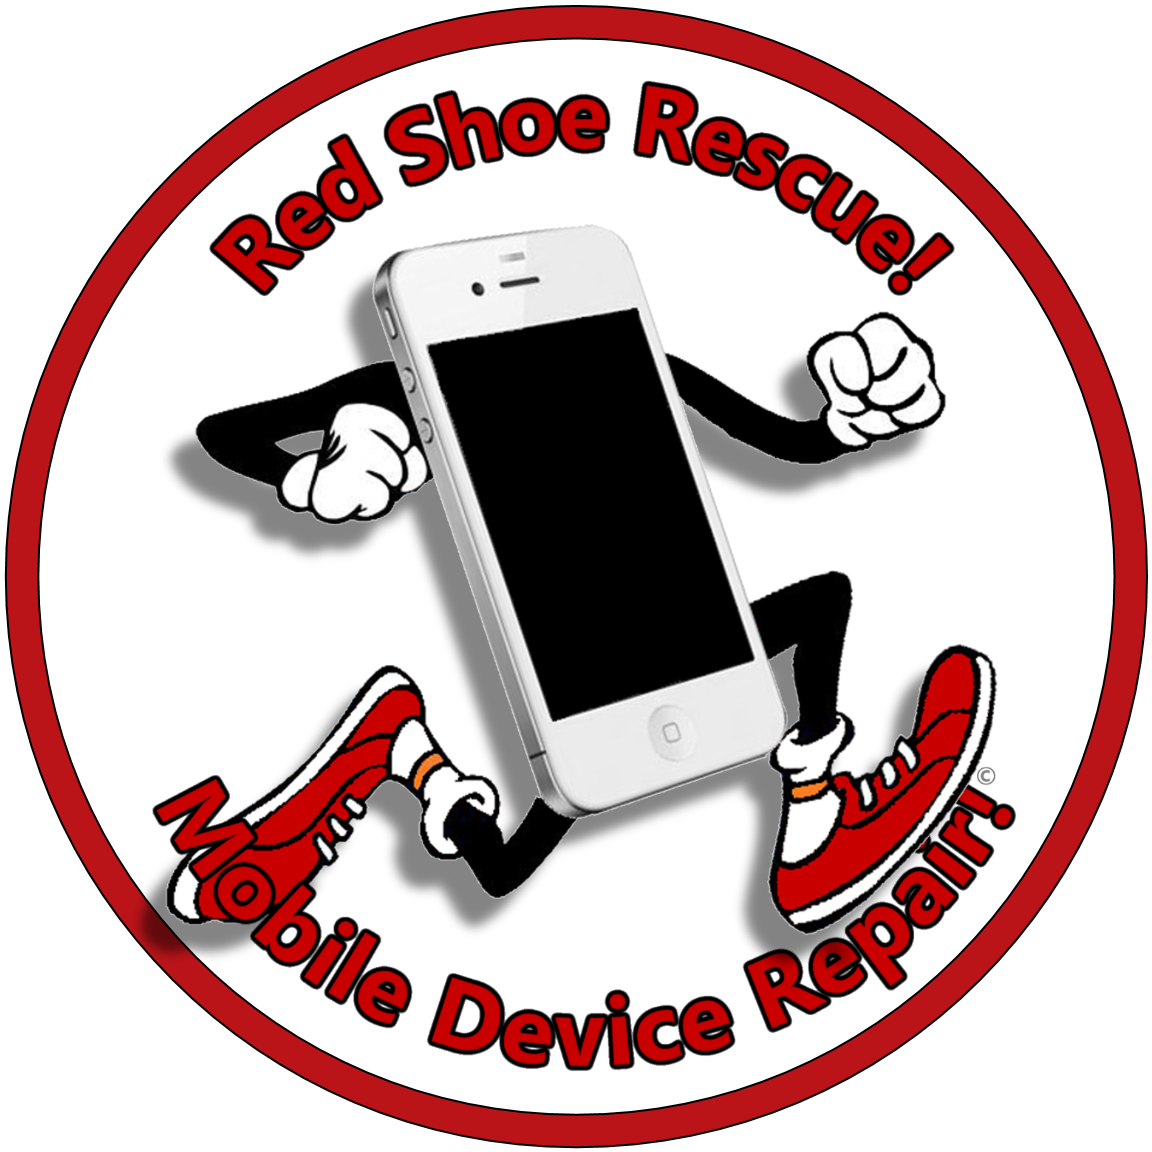 Red Shoe Rescue